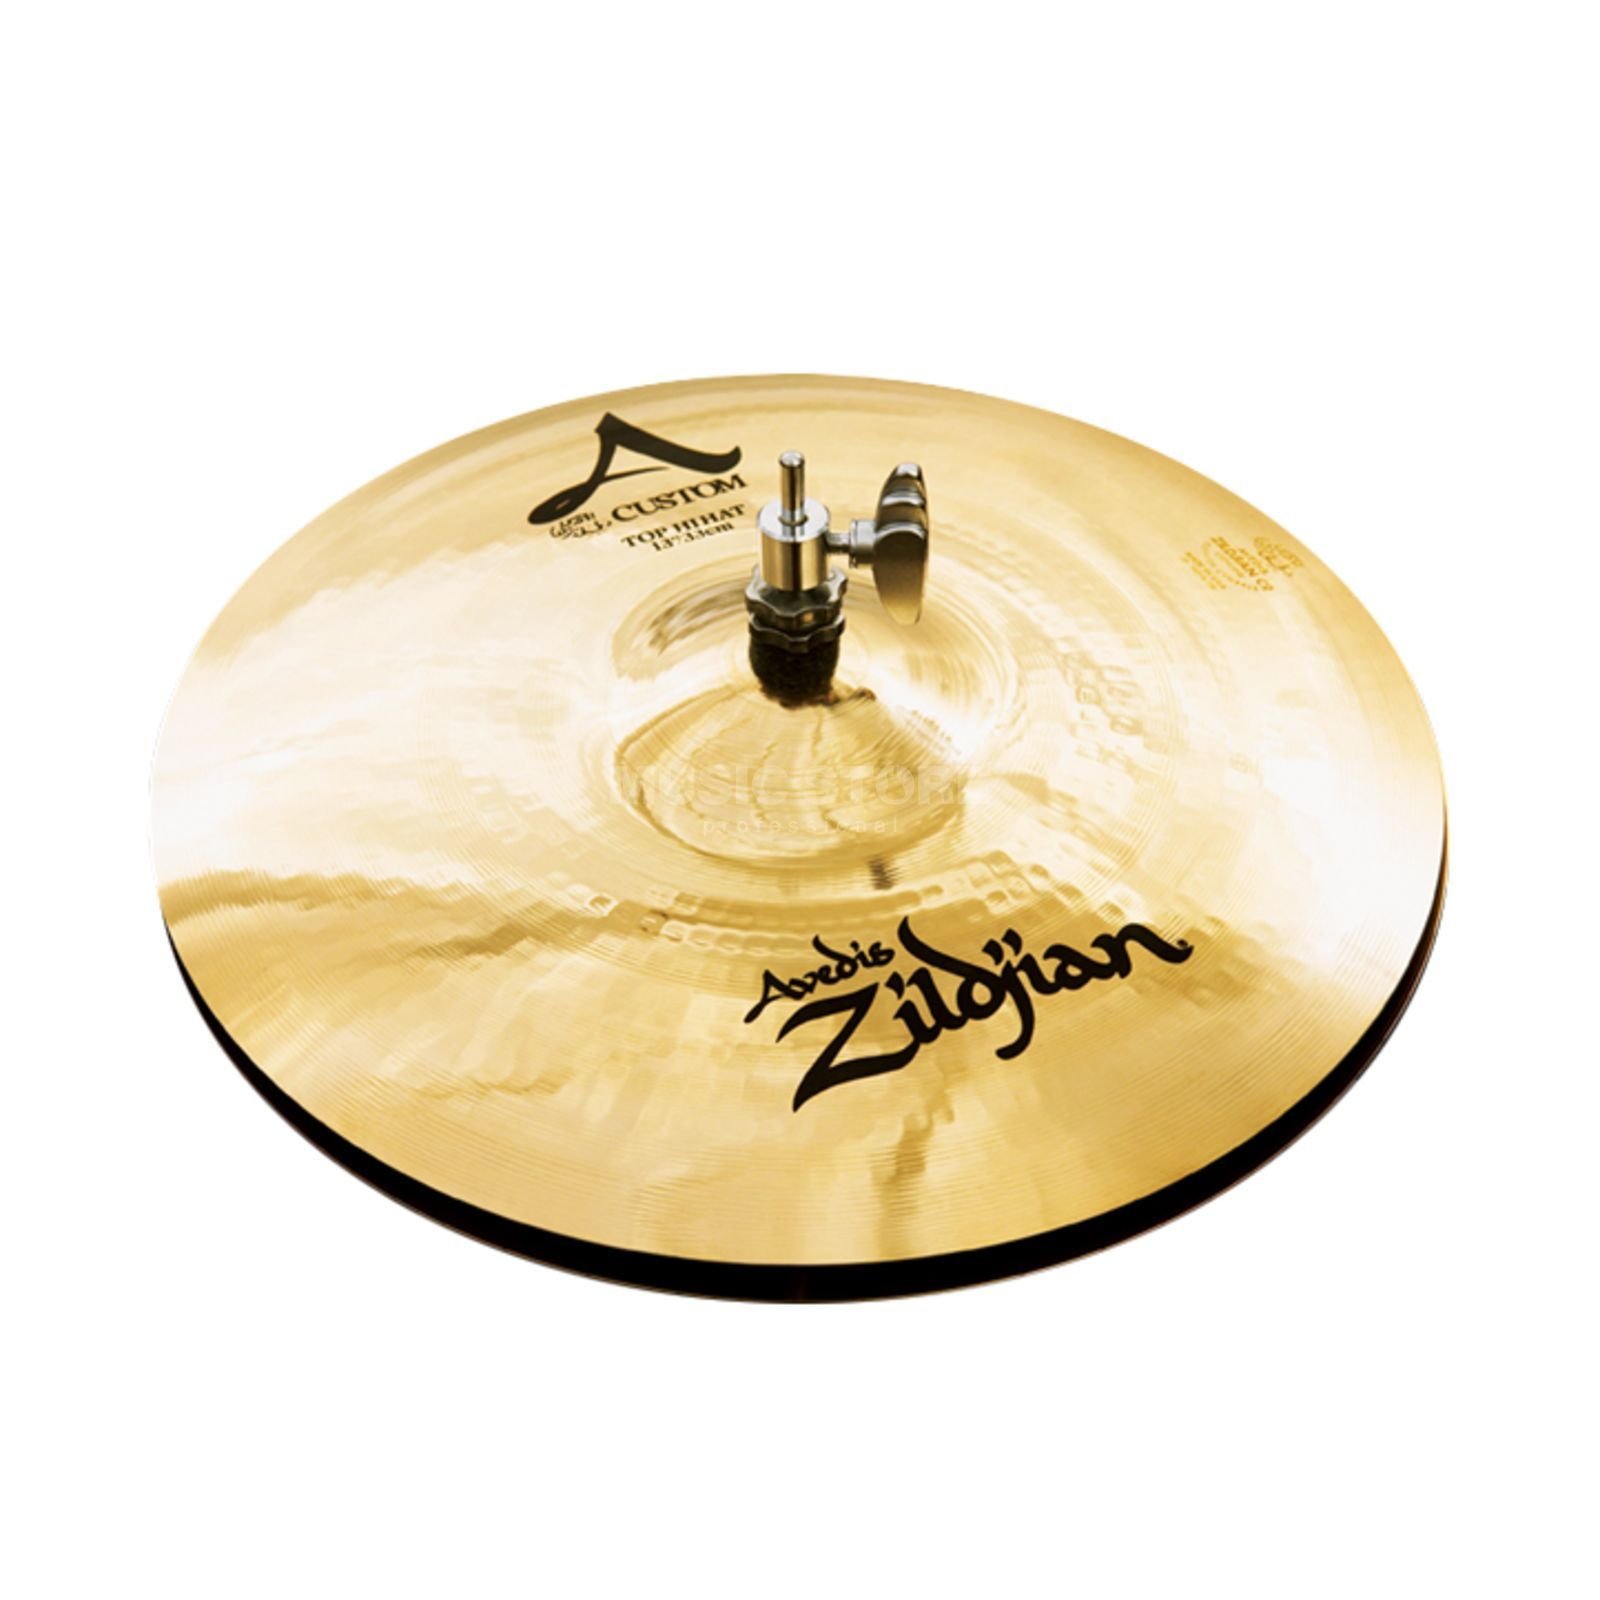 "Zildjian A-Custom HiHat 13"" Brilliant Finish Produktbillede"